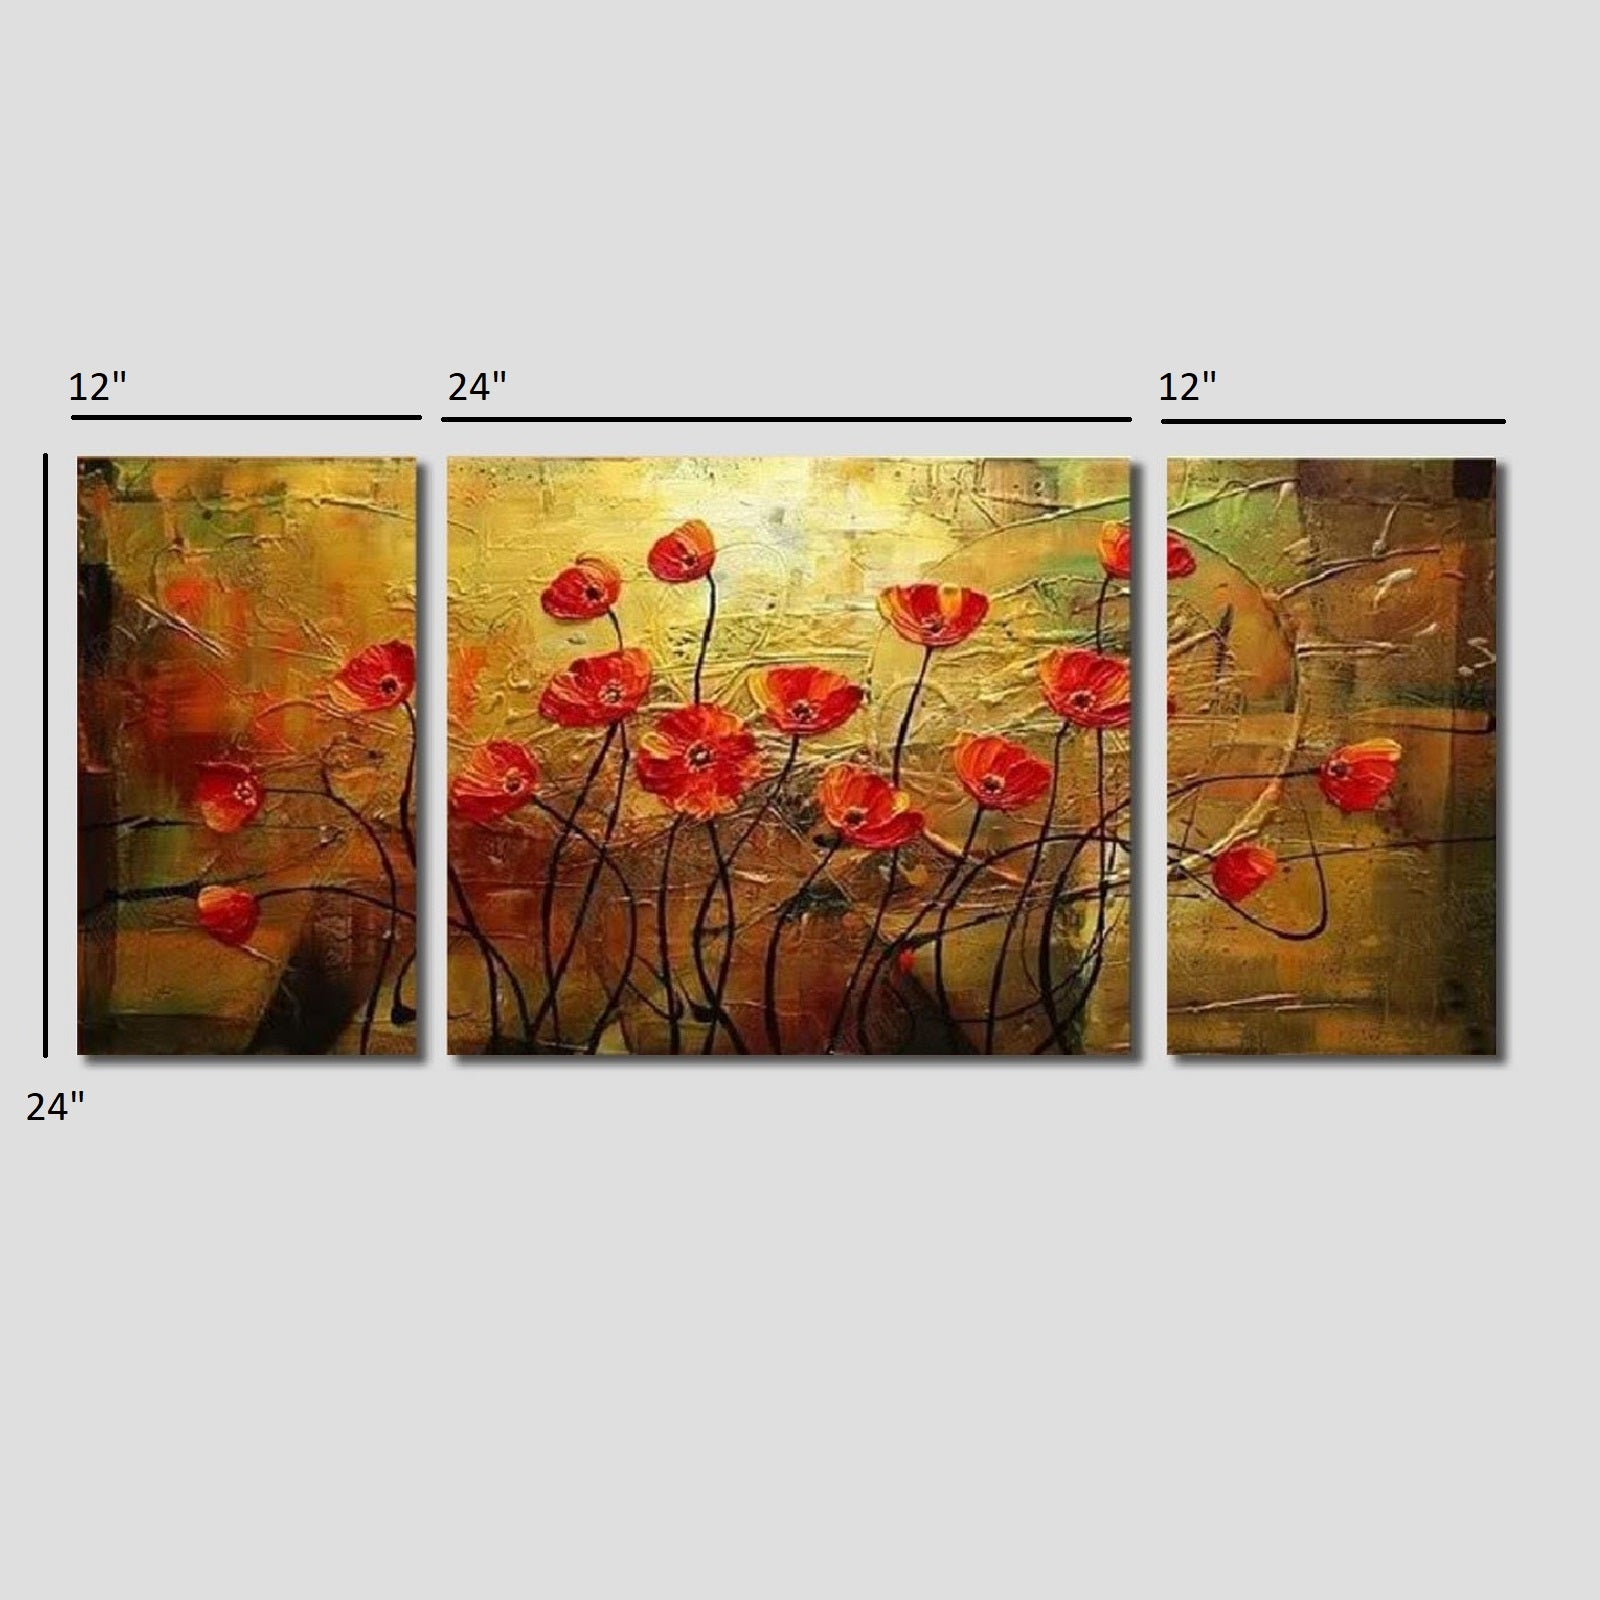 Handmade oil painting on canvas of poppy flowers in group papiyona handmade oil painting on canvas of poppy flowers in group mightylinksfo